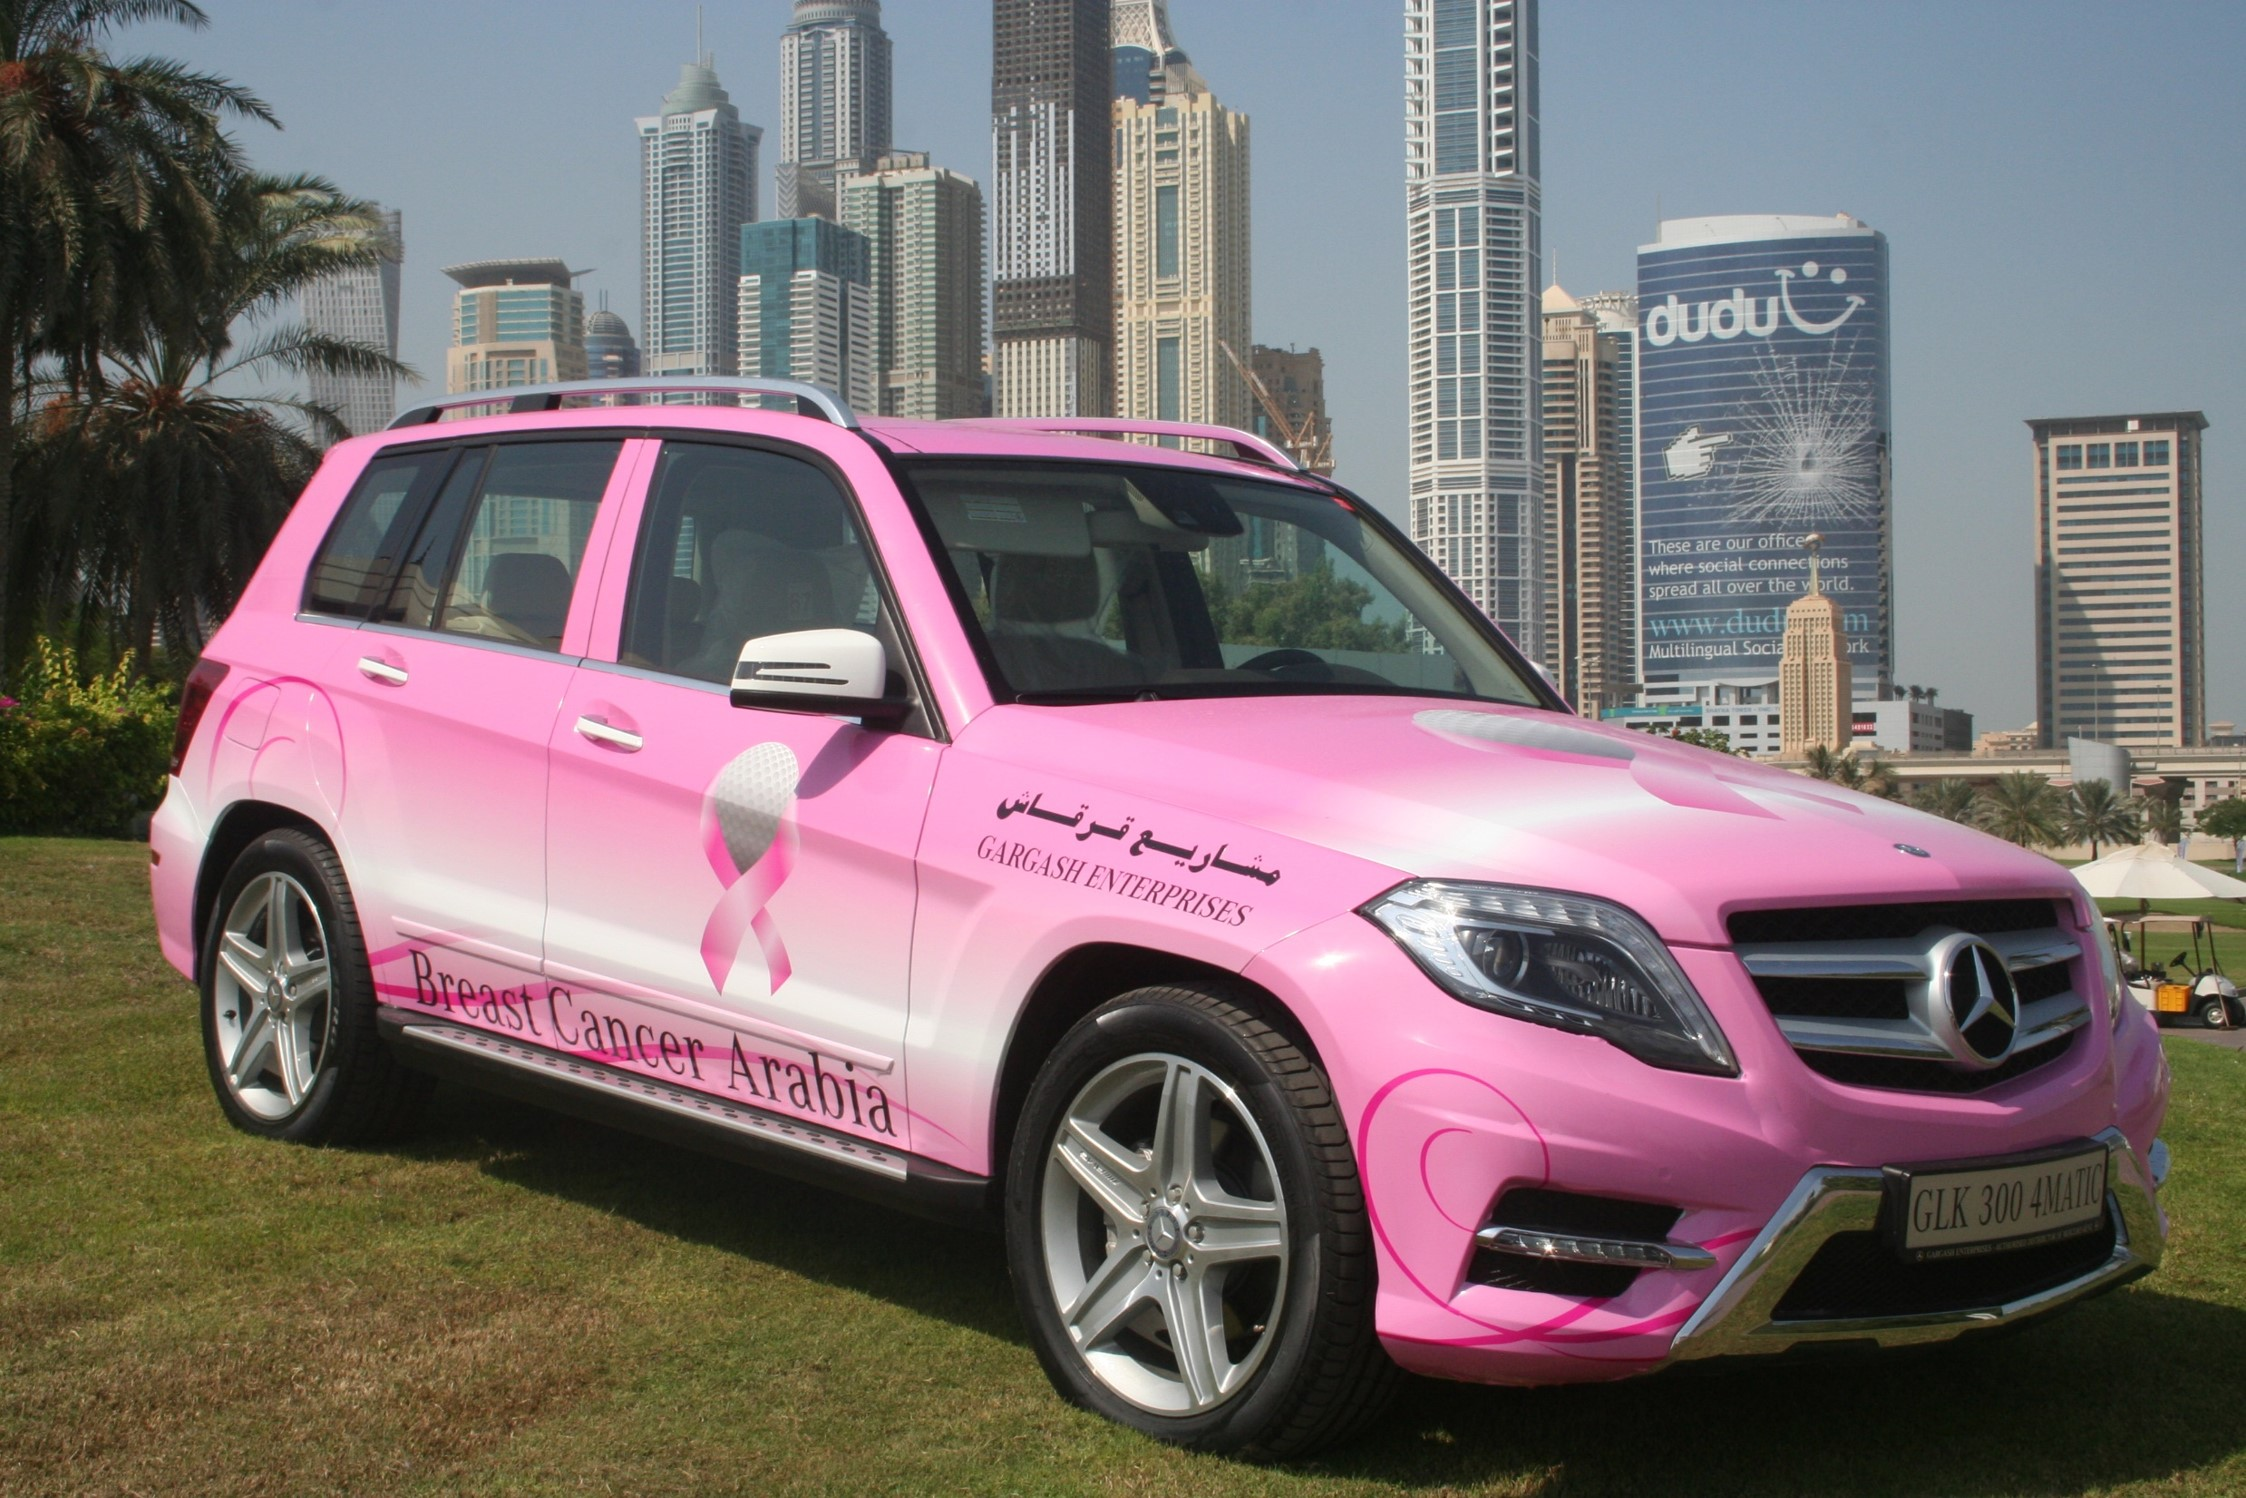 Our brand breast cancer arabia for Mercedes benz glx